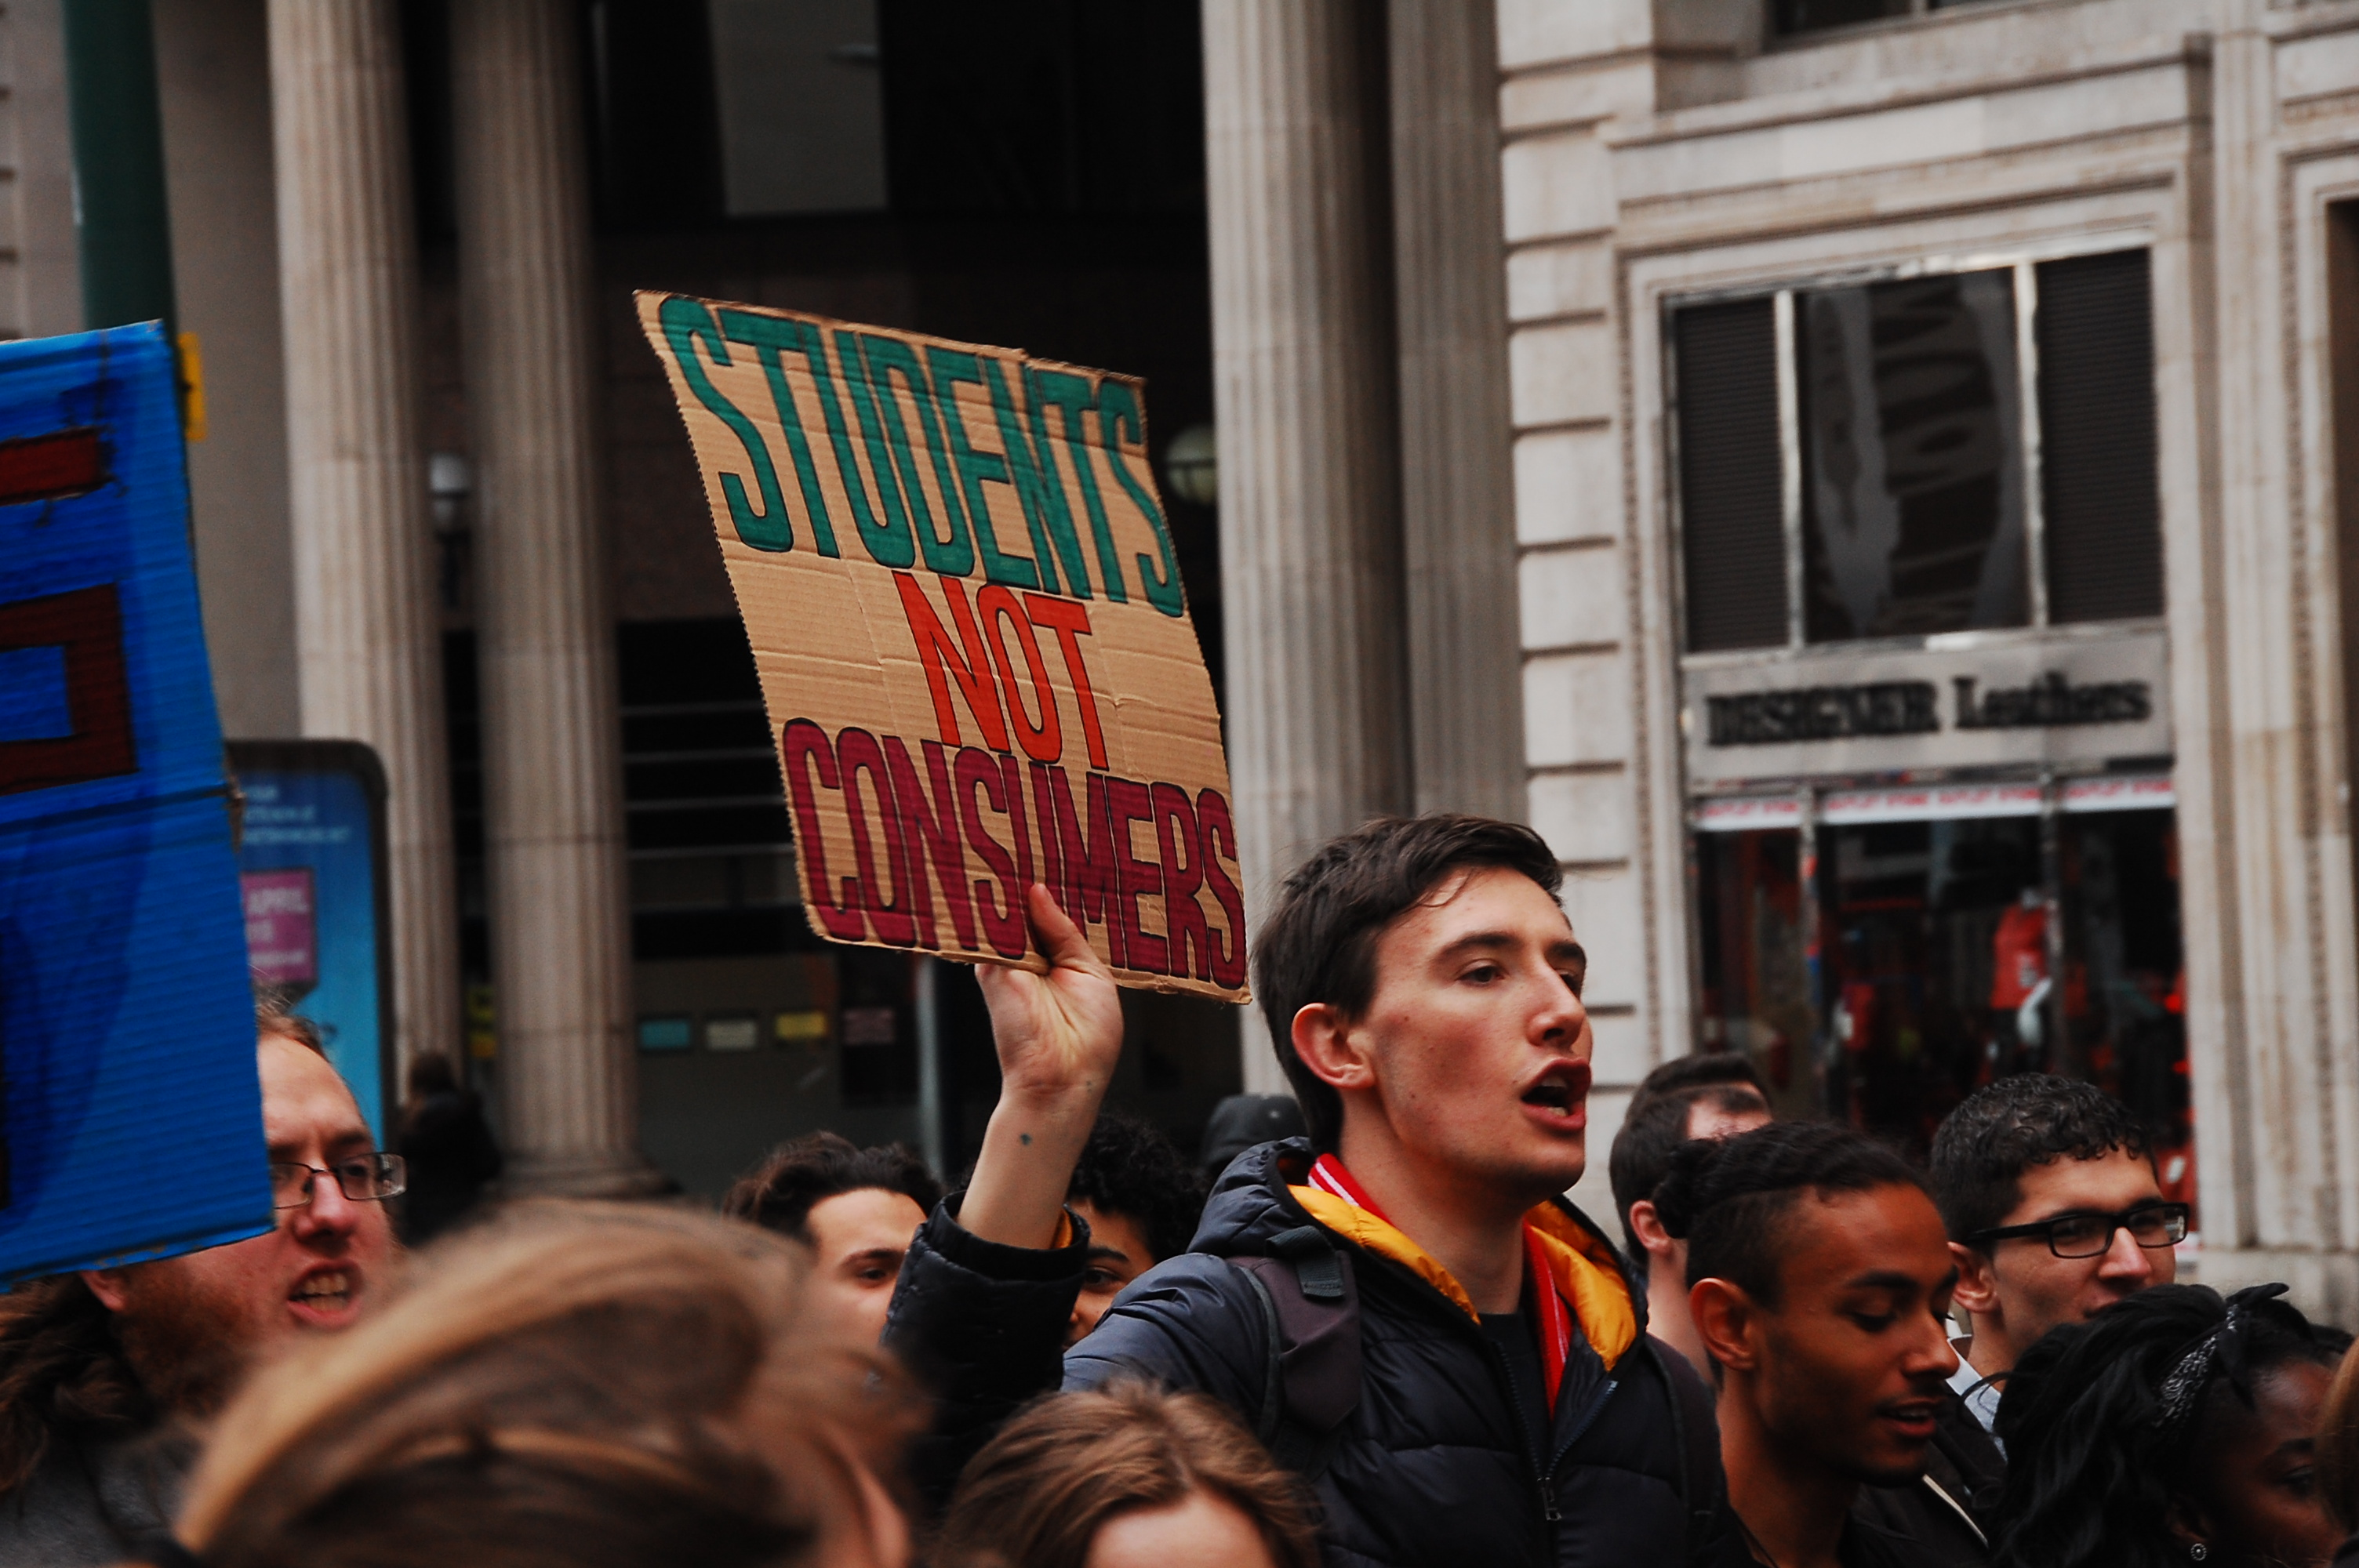 'Students not consumers!' Students at a Free Education Demonstration in Birmingham in March. Photo: William Pinkney-Baird